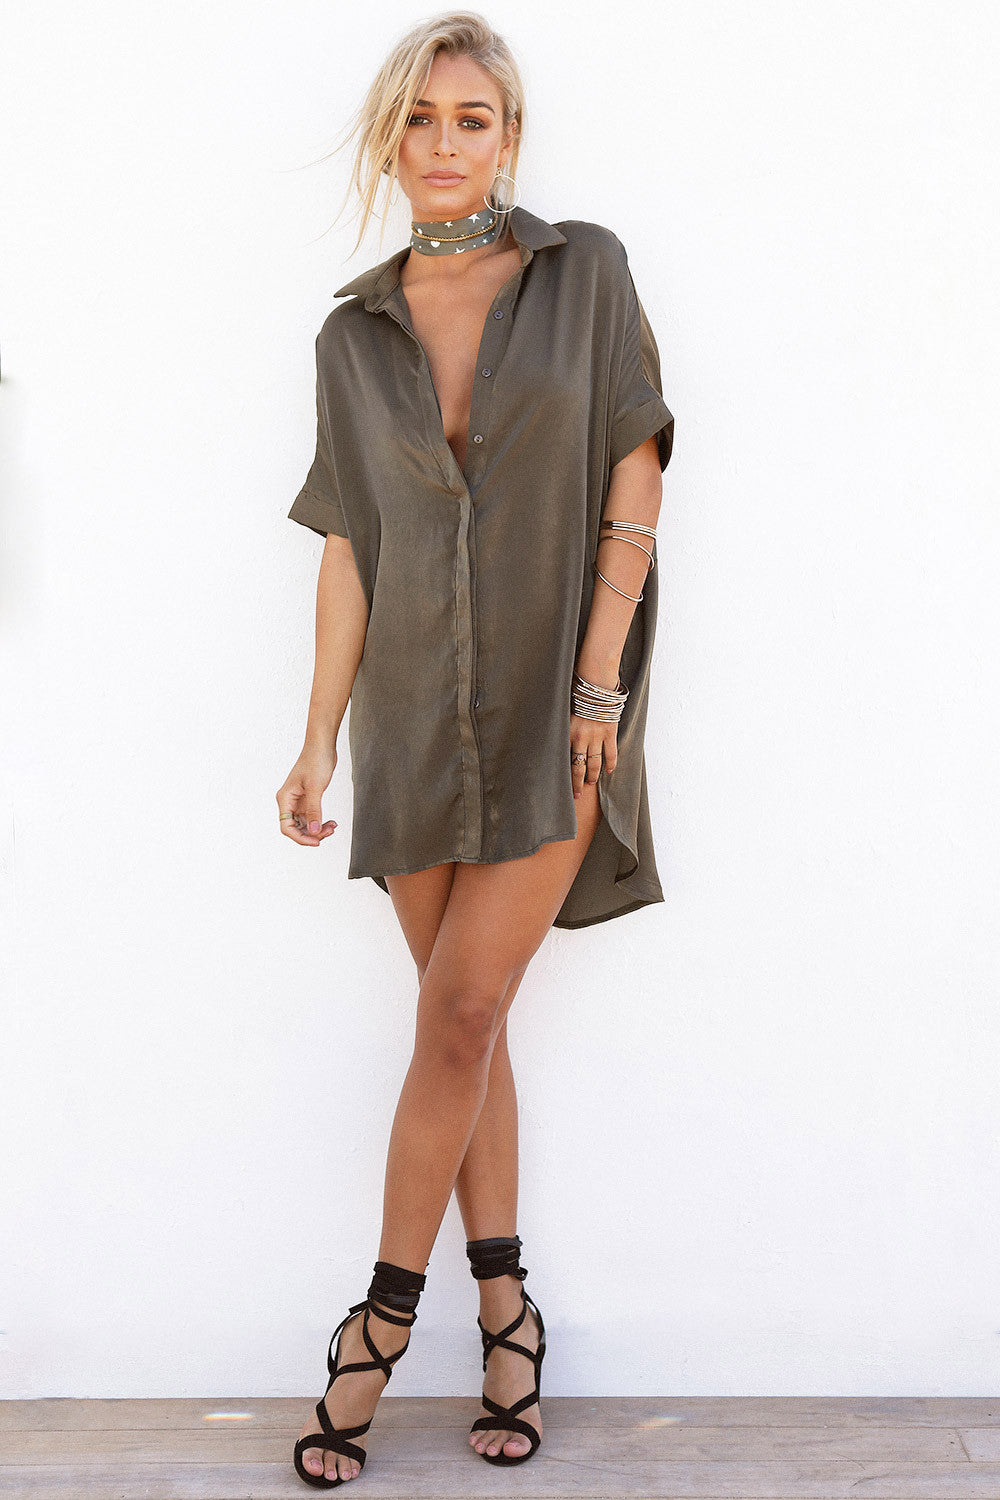 Silky Shirt Dress - Khaki - Lovecy - 4